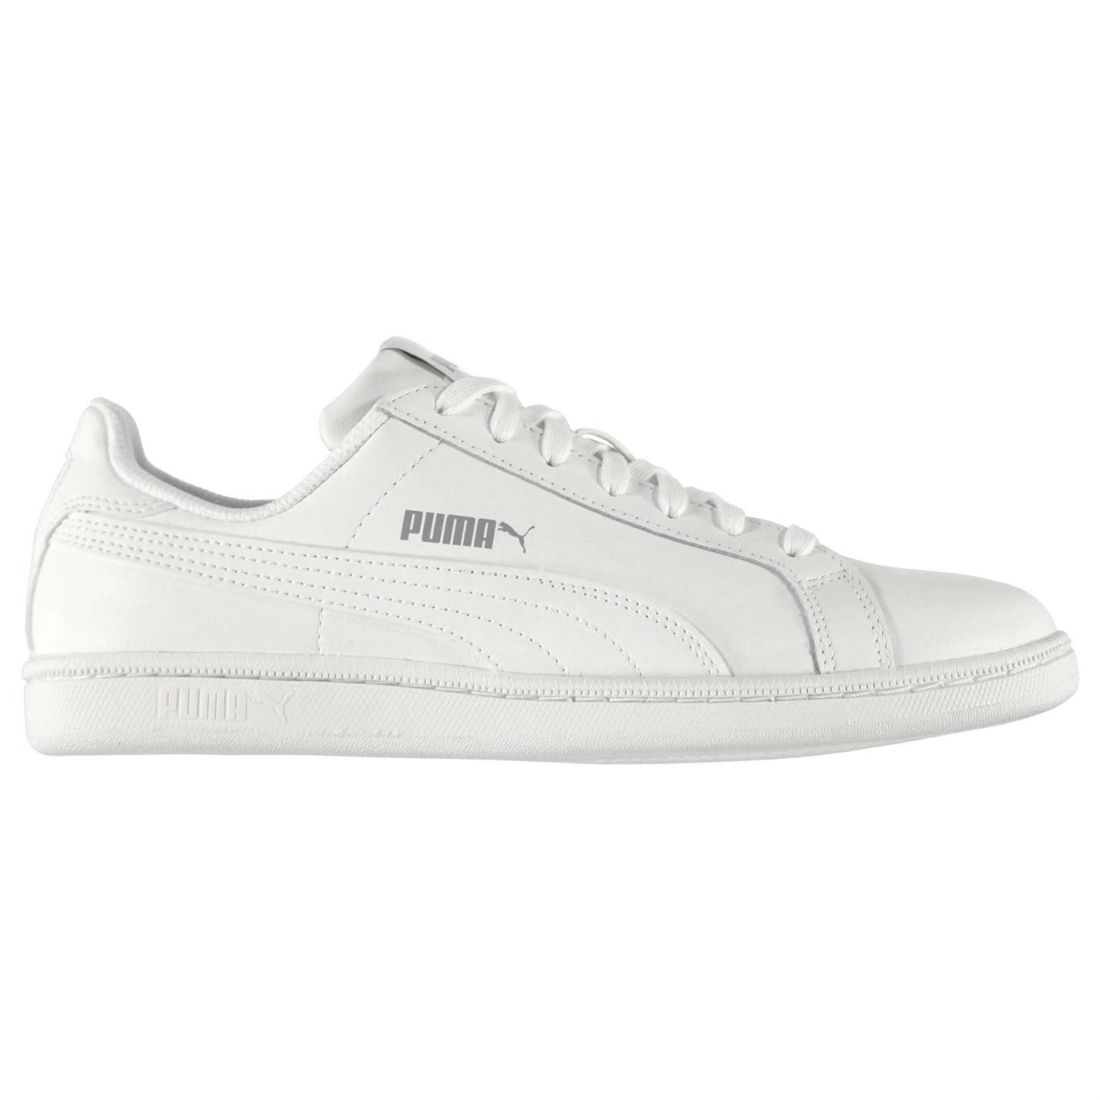 Image is loading Puma-Smash-Leather-Trainers-Pumps-Running-Sneakers-Lace- 4c5fd4005